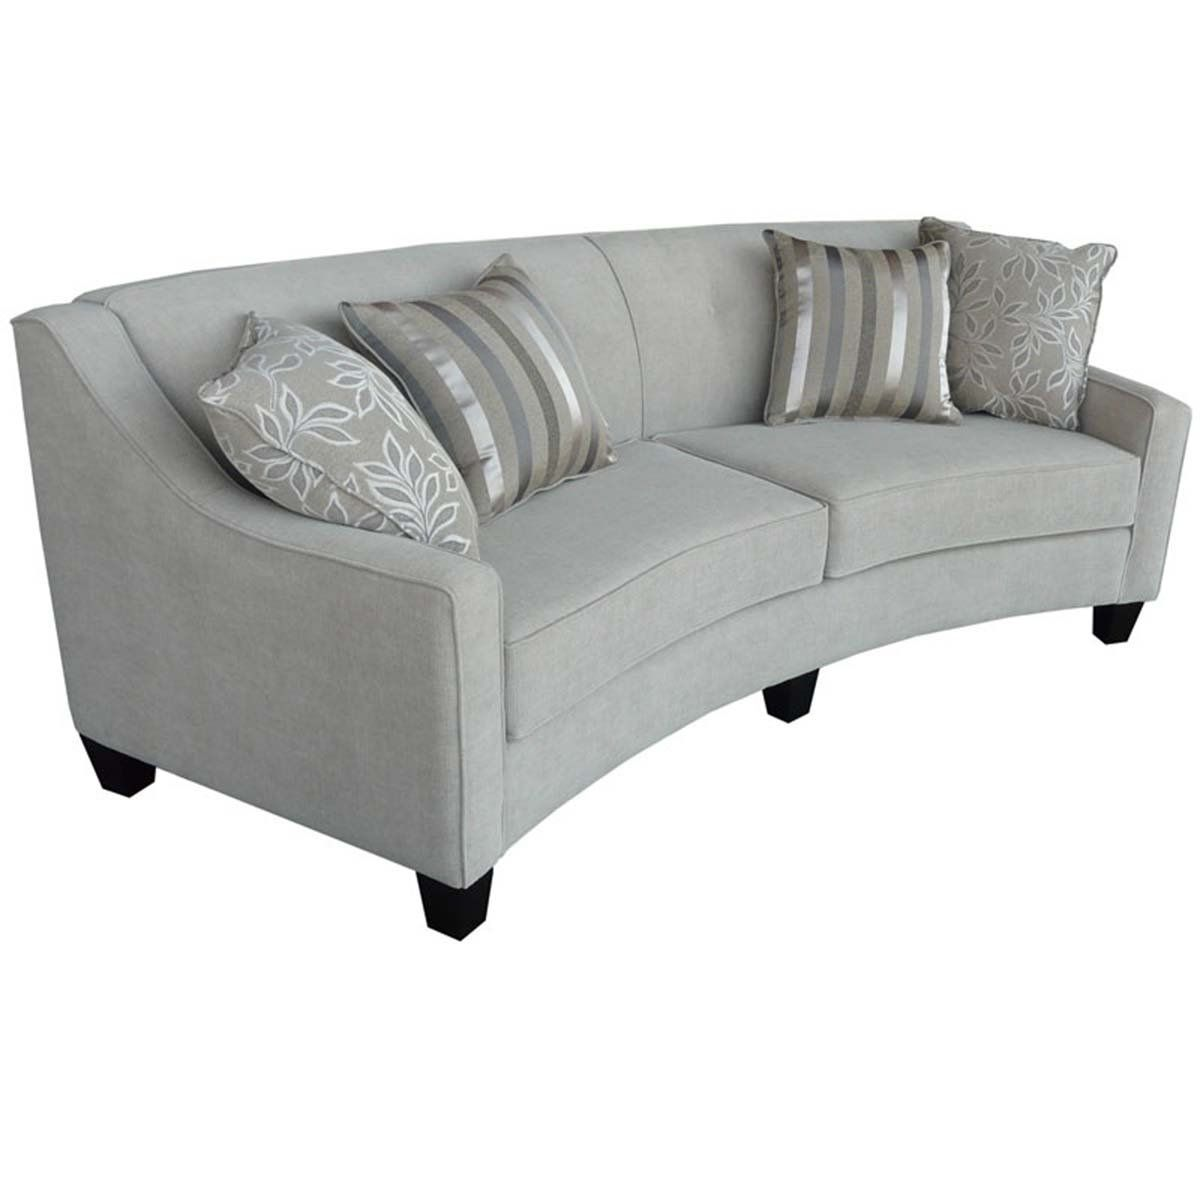 Come On In Quickly To See All The Brand New Never Been Shown Items Free Cookies And Drinks For The Adults And A Kids Room Curved Sofa Custom Sofa Curved Couch